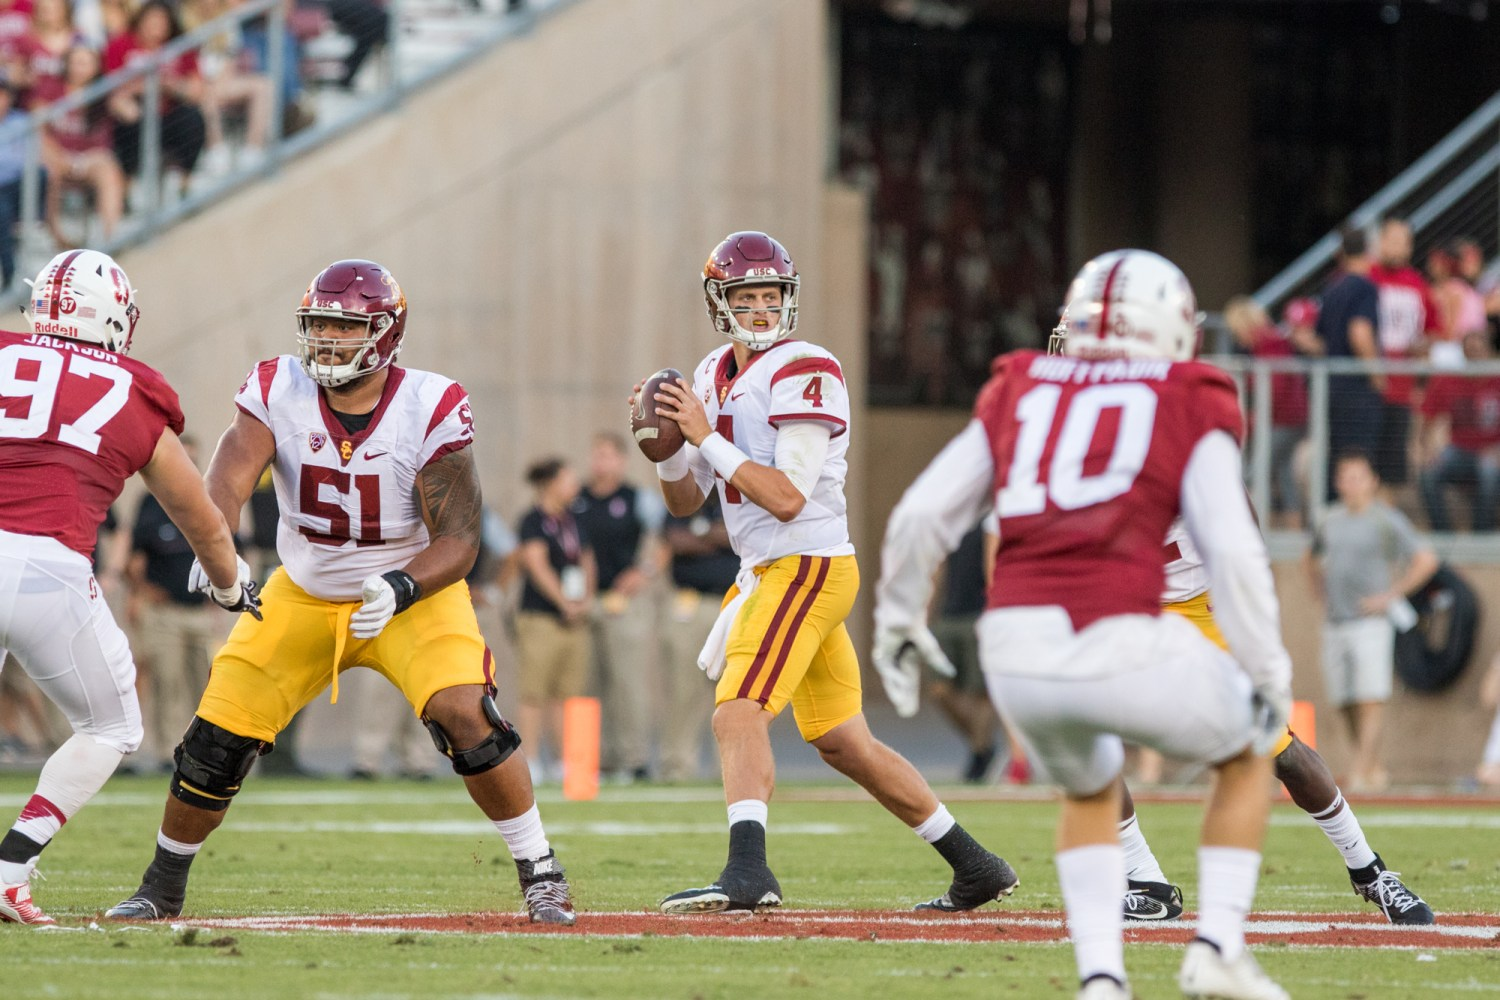 Nick Entin | Daily Trojan Redshirt junior quarterback Max Browne surveys the field. Browne completed 18 of 28 passes for 191 yards on the night.